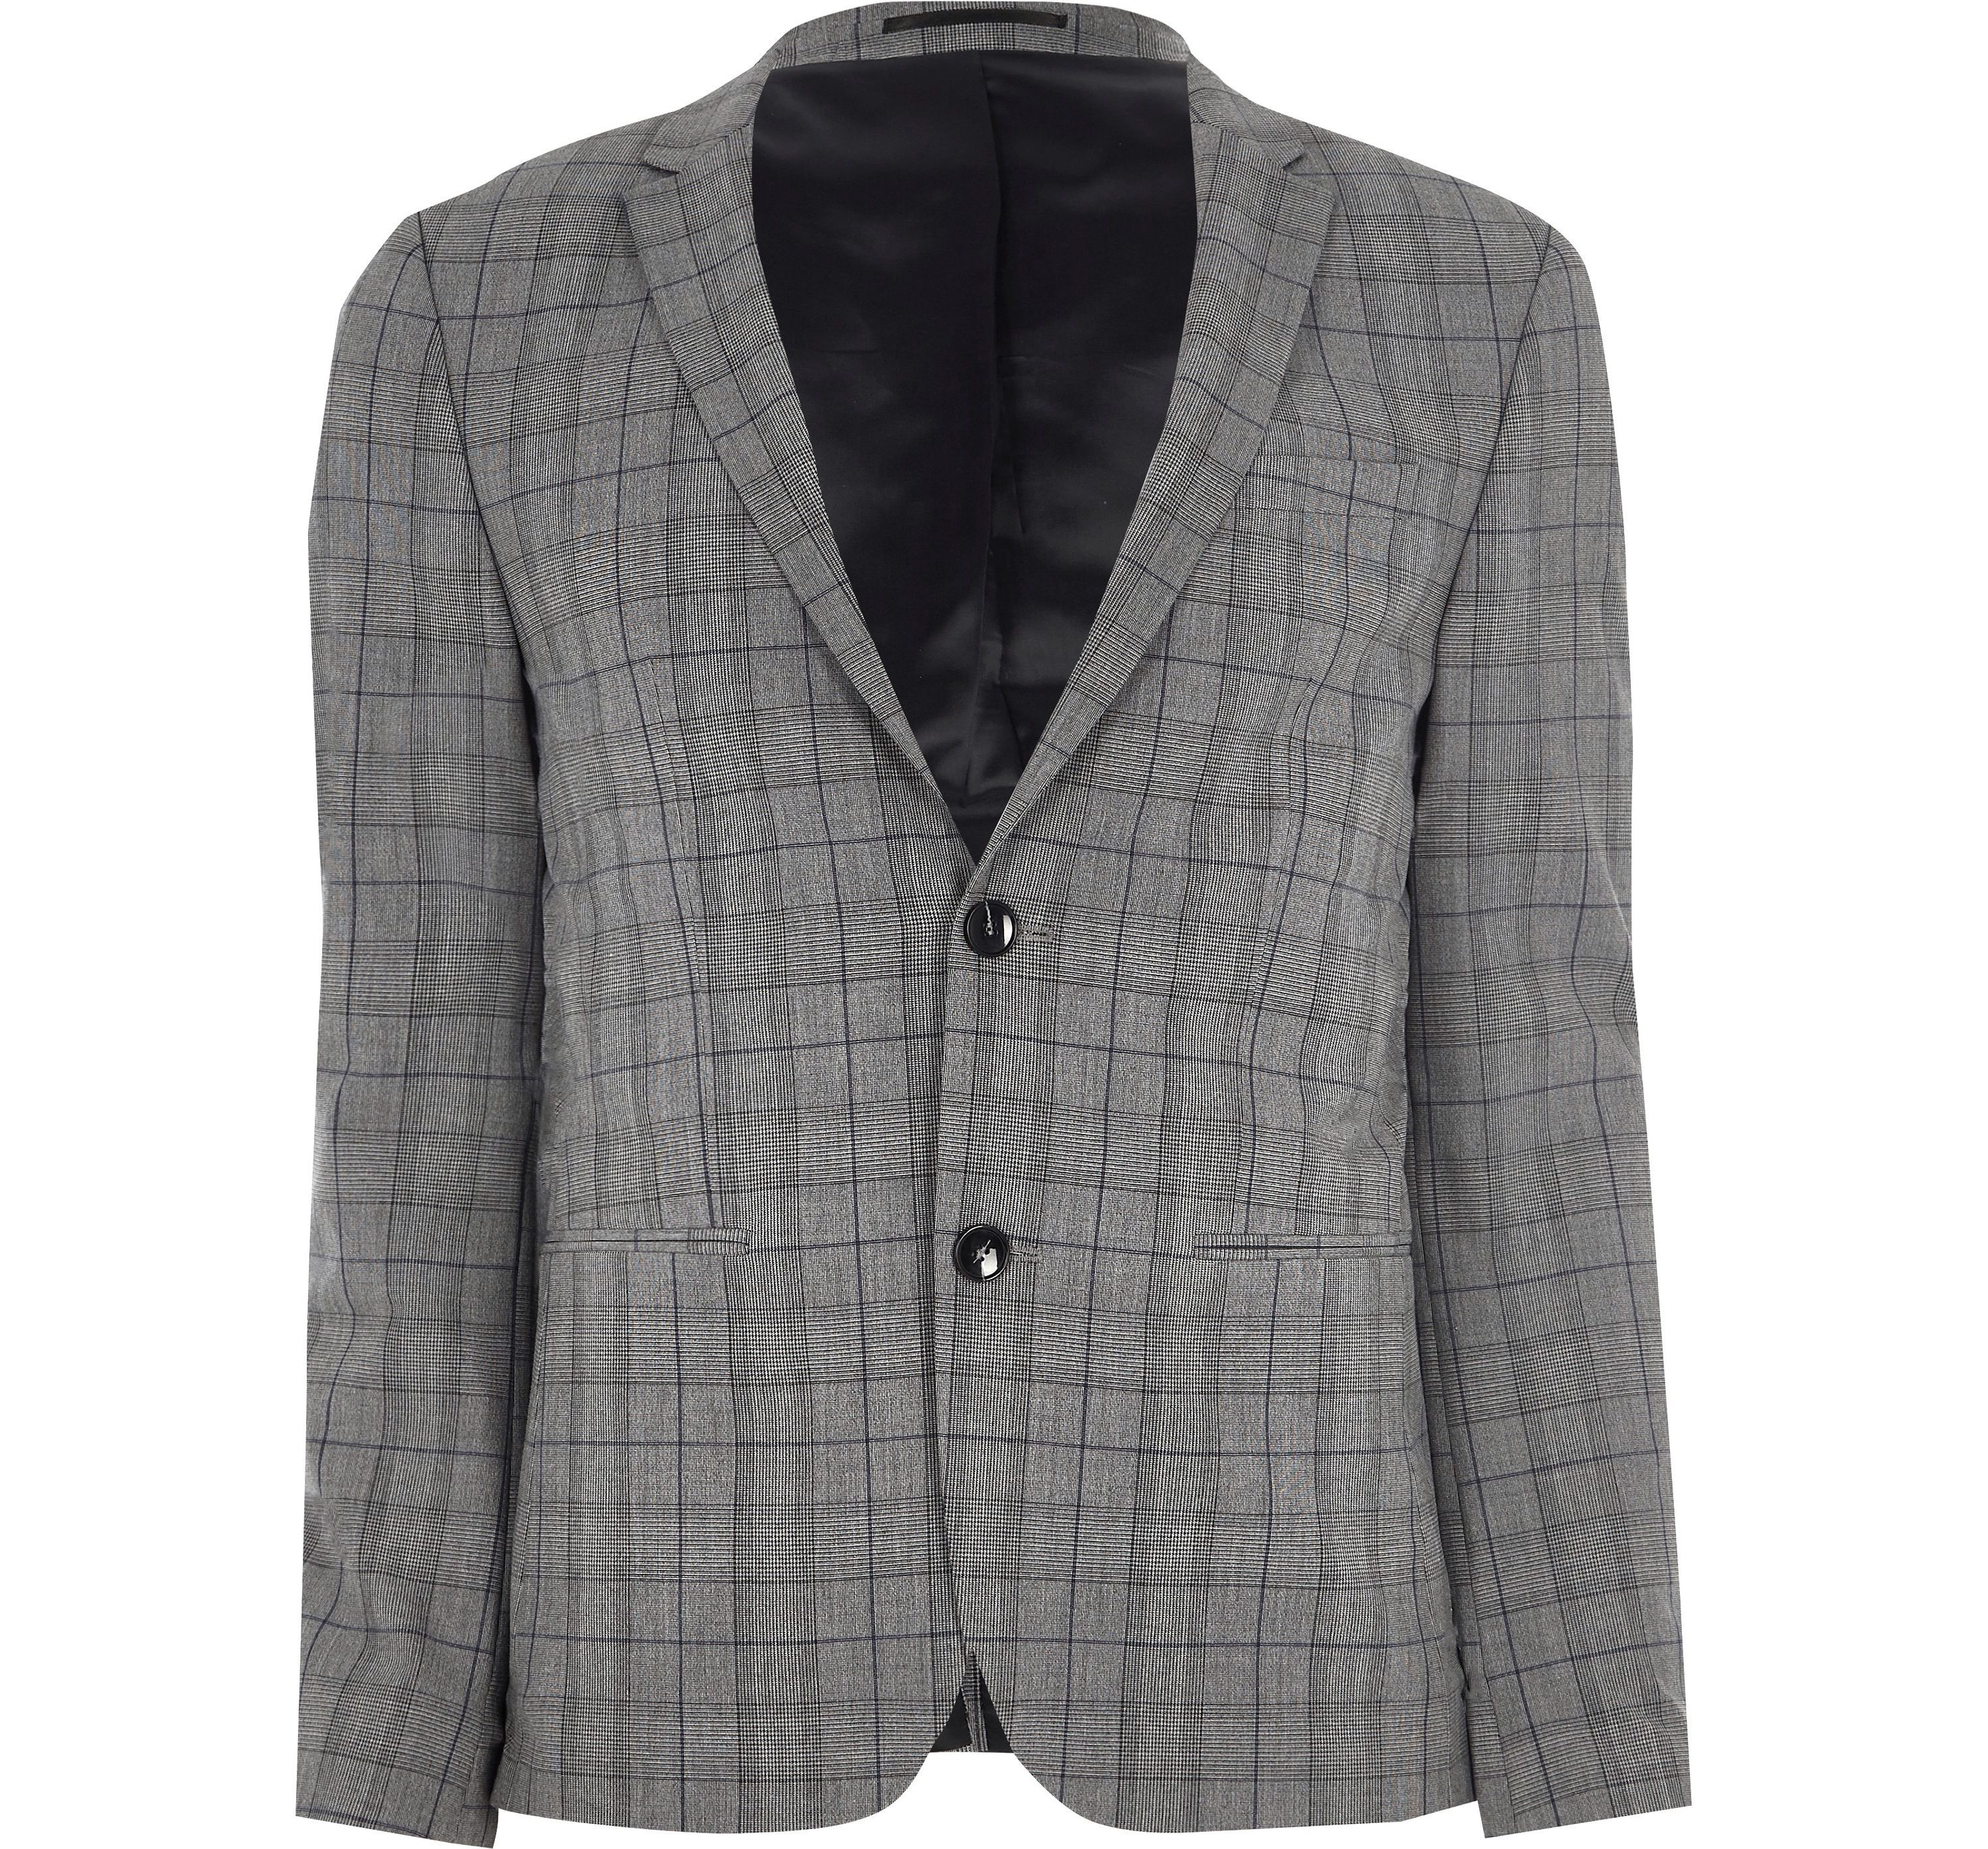 River Island Mens Grey check ultra skinny fit suit jacket